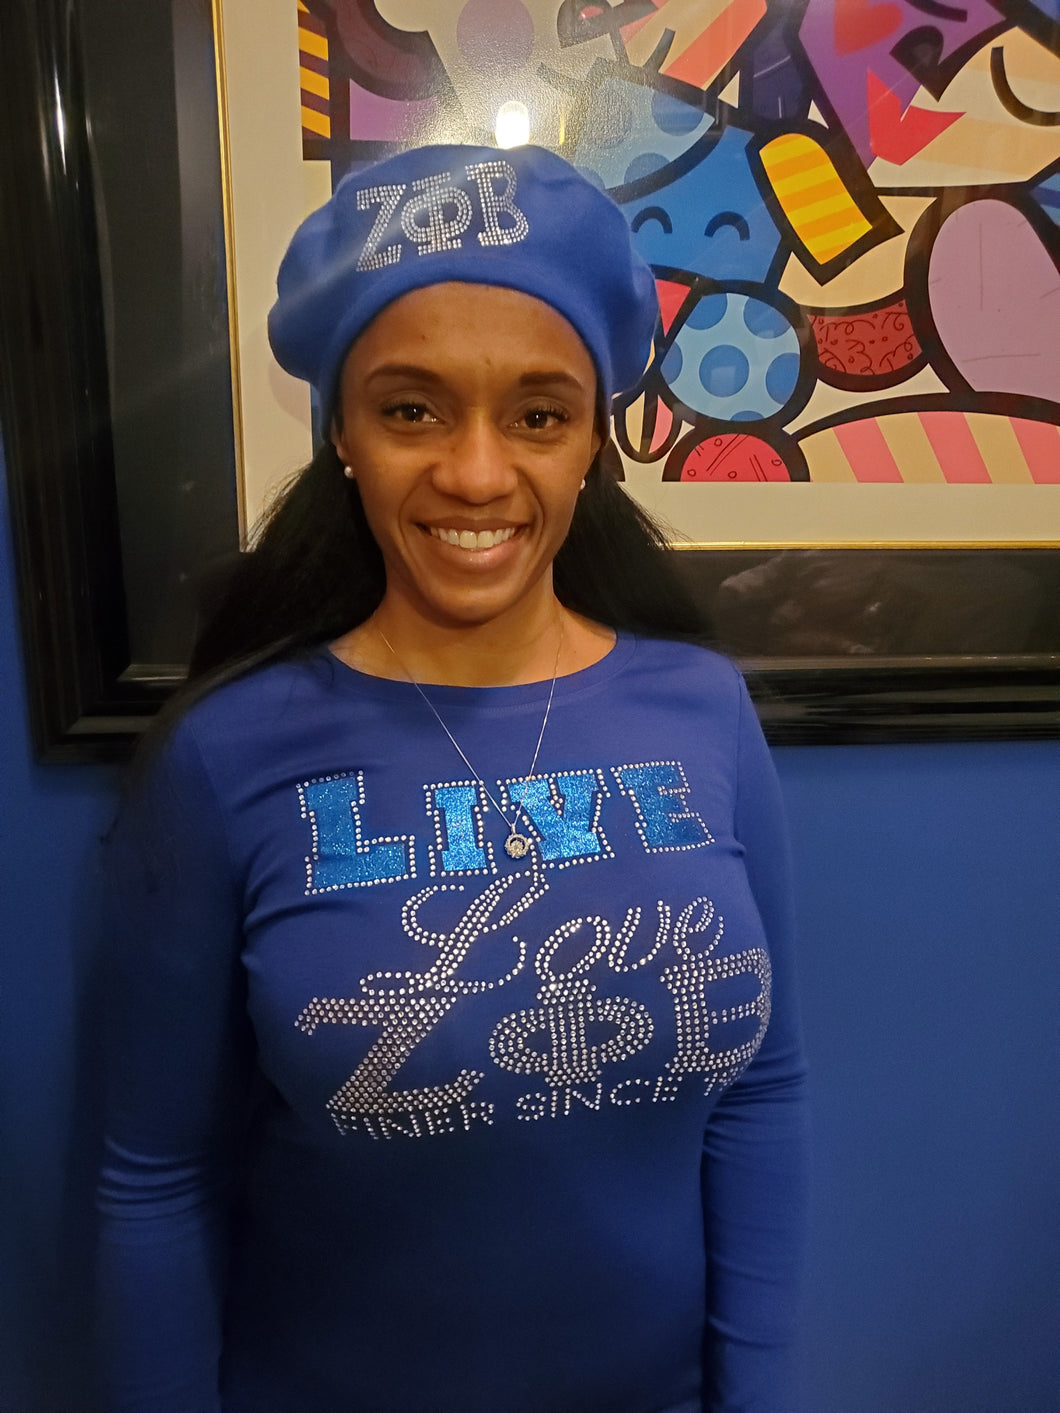 Live, love, Zeta bling shirt